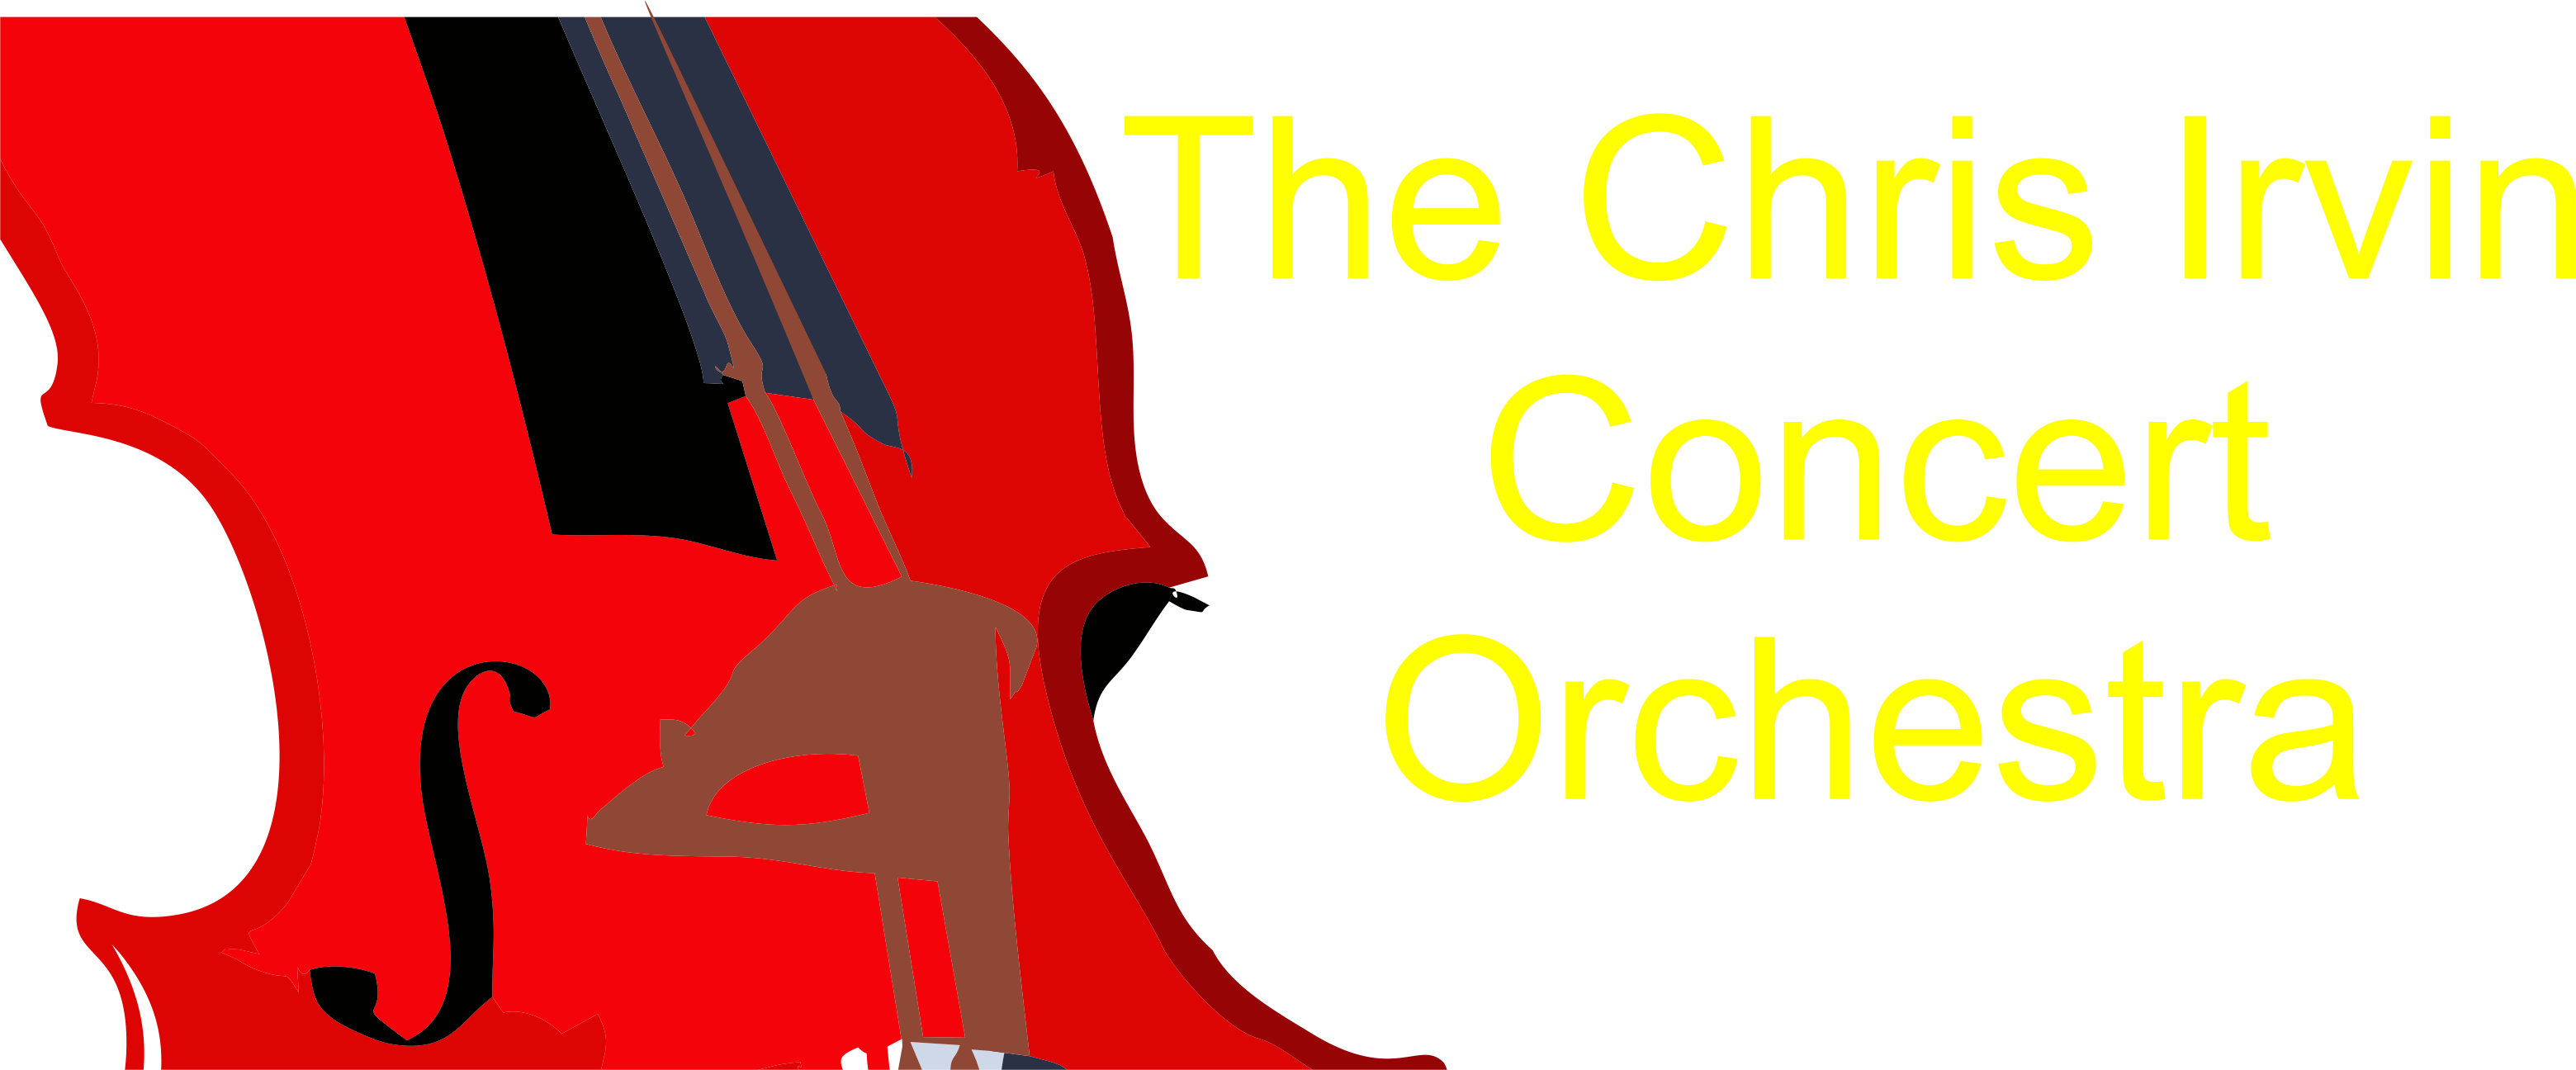 The Chris Irvin Concert Orchestra